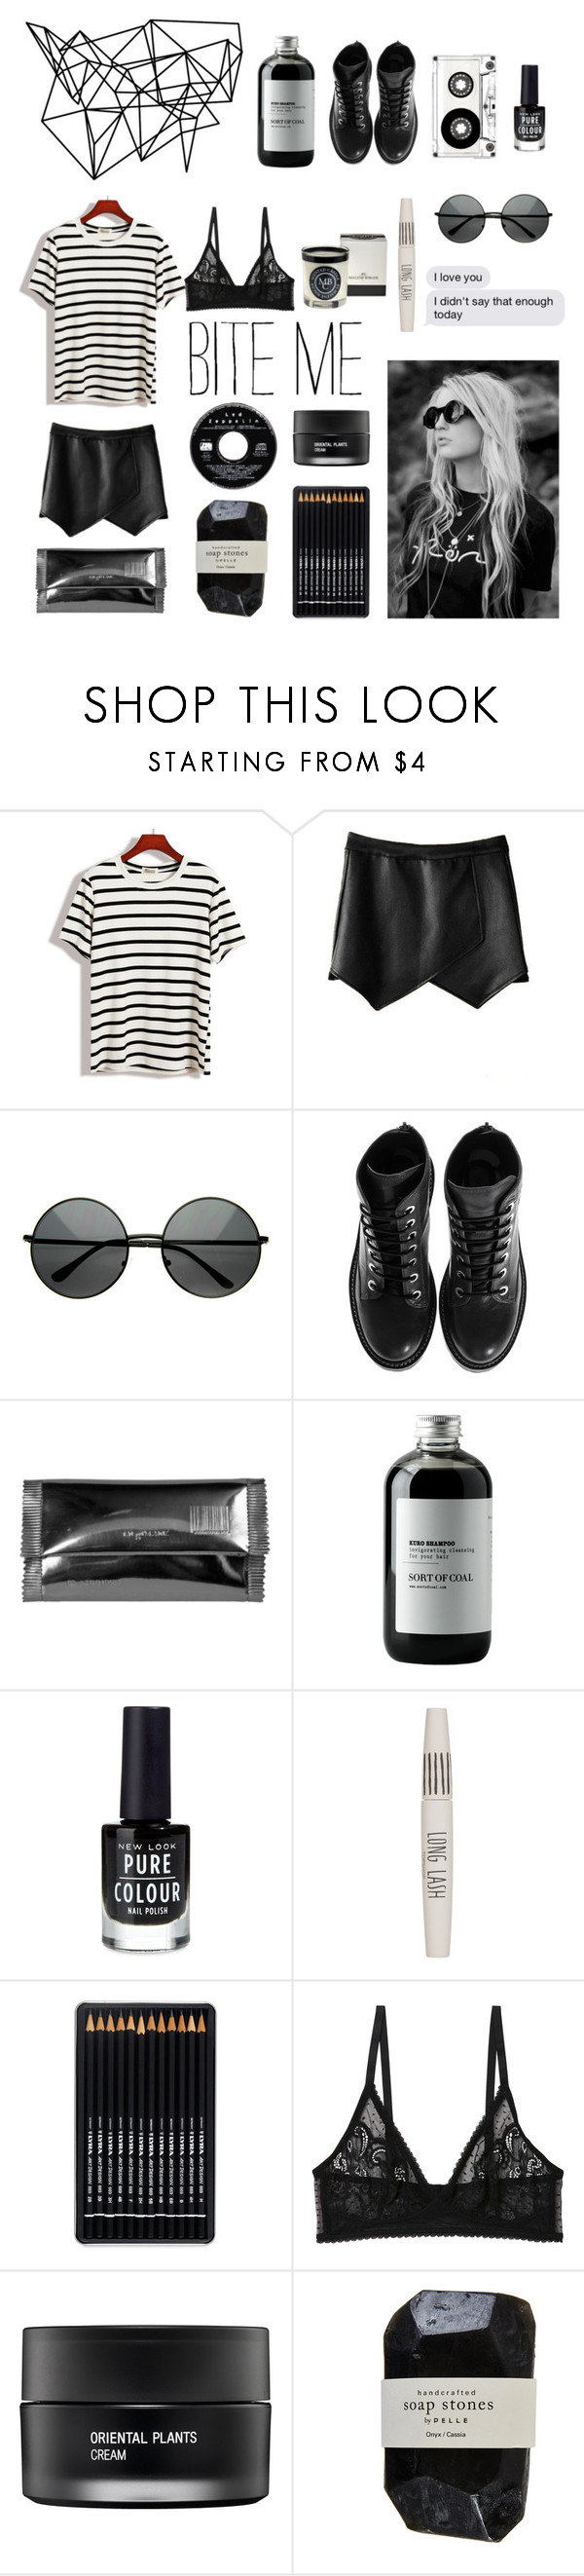 """Bite Me, I Dare You"" by smartiesandparties ❤ liked on Polyvore featuring beauty, Color Me, Kenzo, Maison Margiela, Sort of Coal, New Look, Topshop, Monki, Koh Gen Do and Cassia"